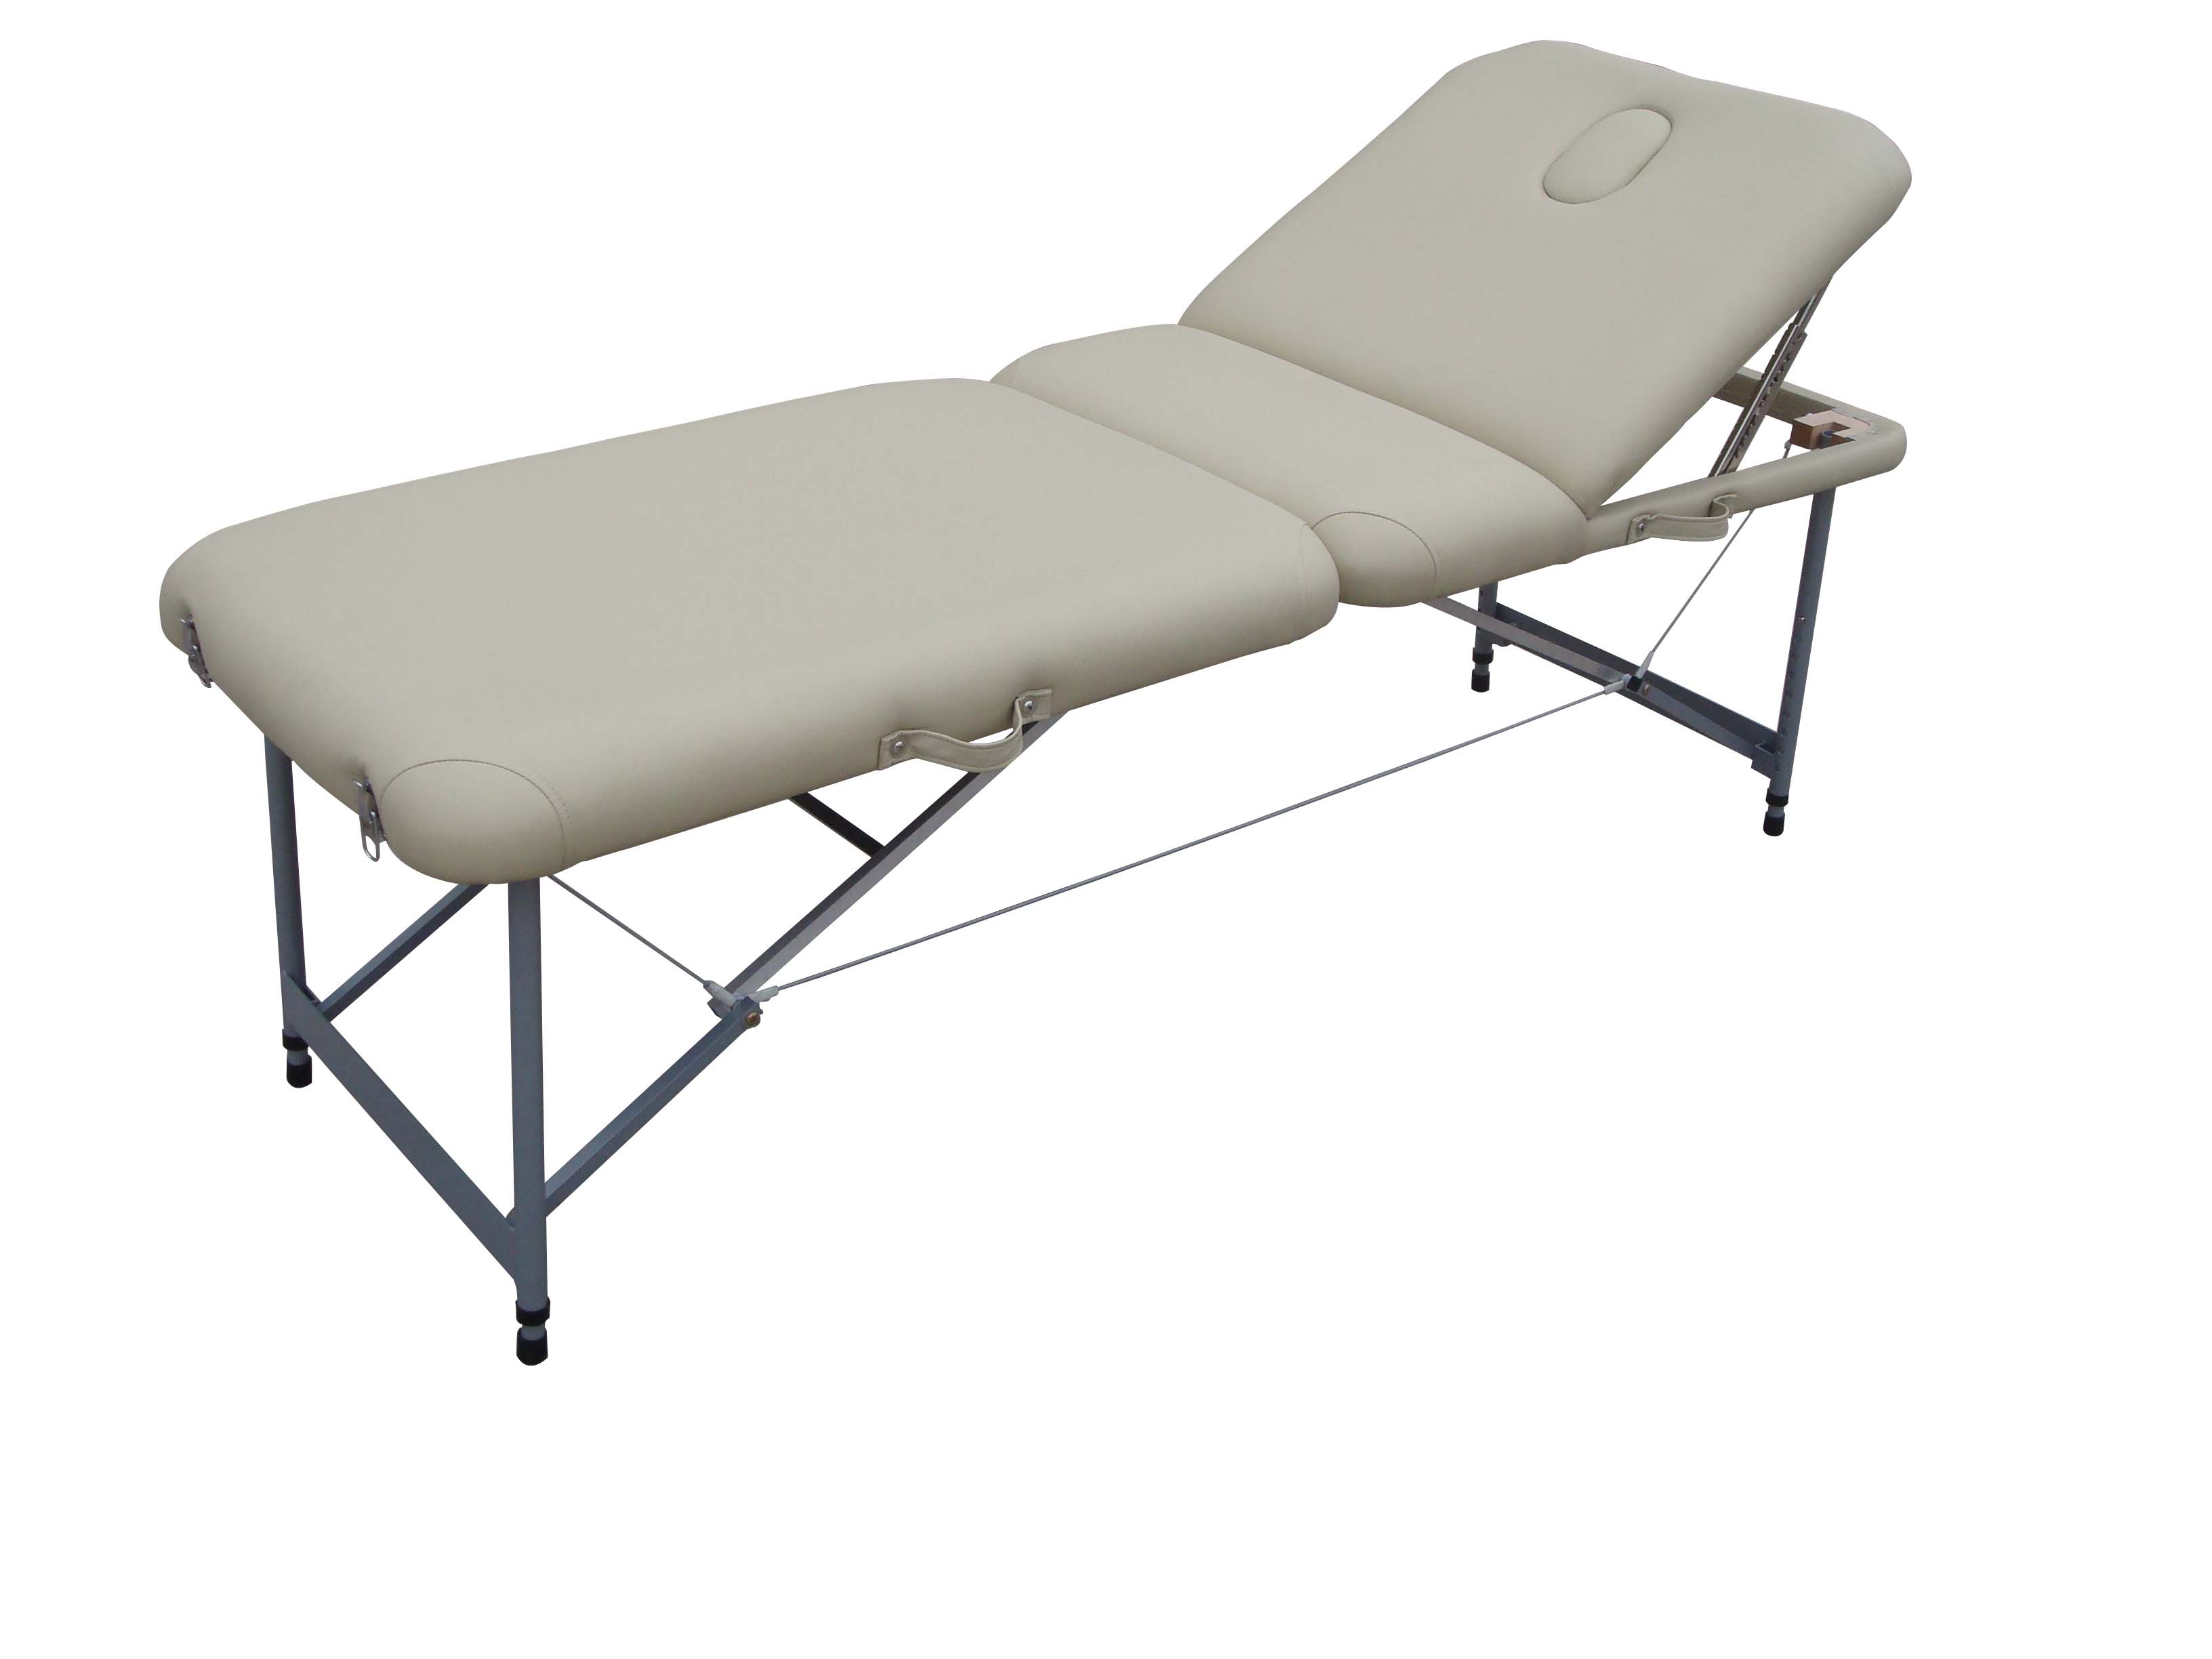 table javy sports first commercial aid massage portable singapore